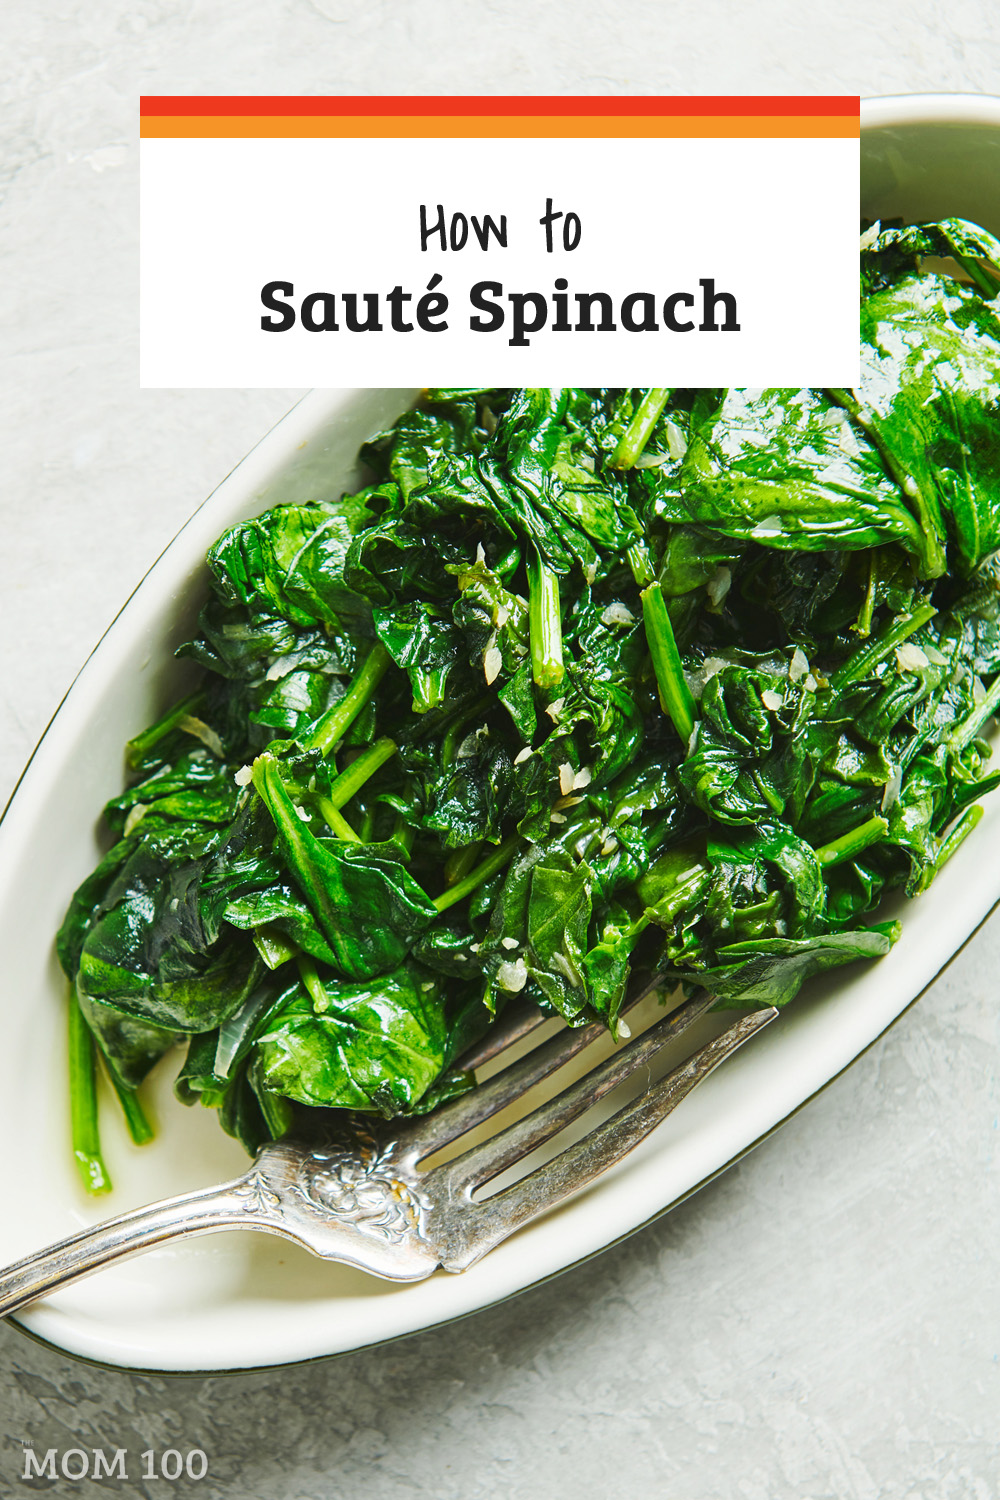 How to Make Sautéed Spinach: Making sautéed spinach is so easy, and it\'s a colorful, versatile, nutritious and delicious side dish for any night of the week.